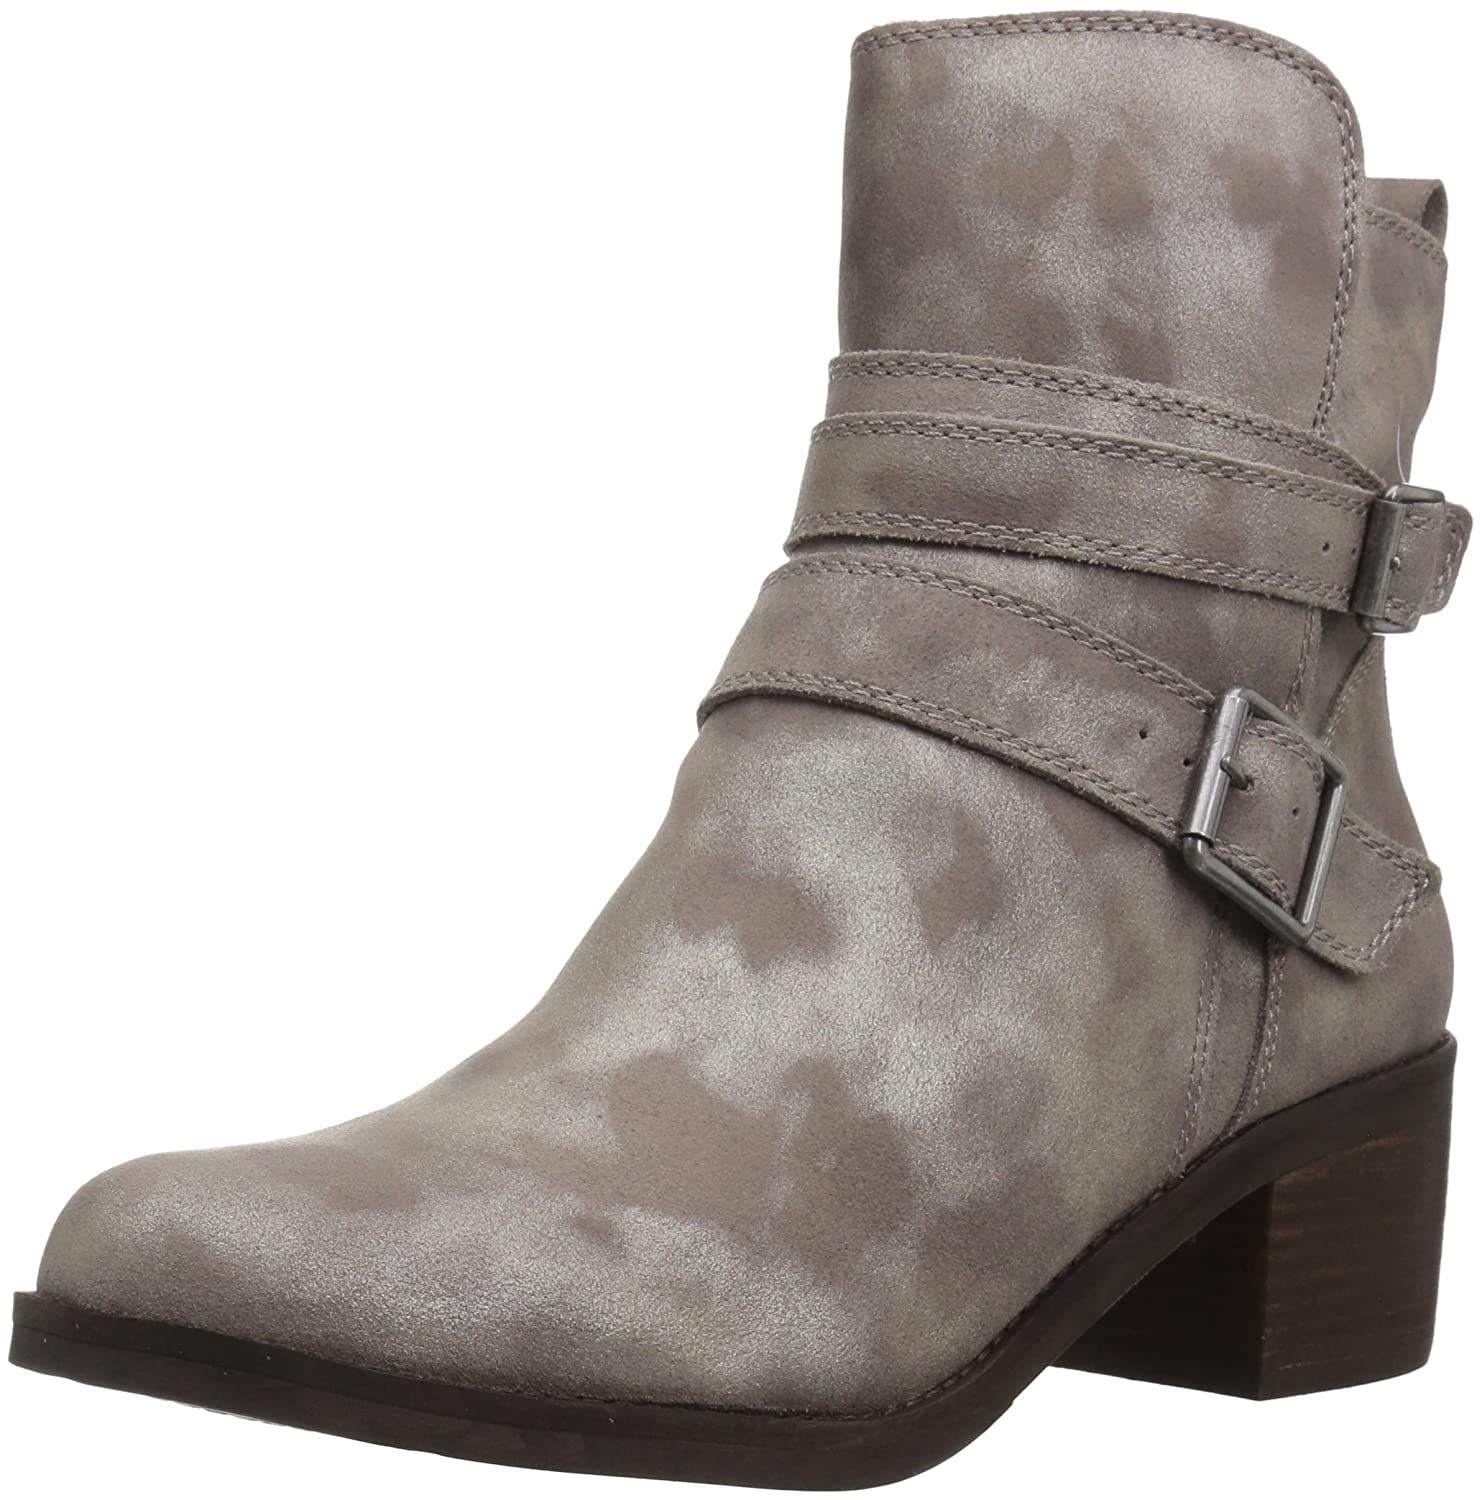 Lucky Brand Women's Cordeena Combat Boot B0722Y1L3D 12 M US|Taupe